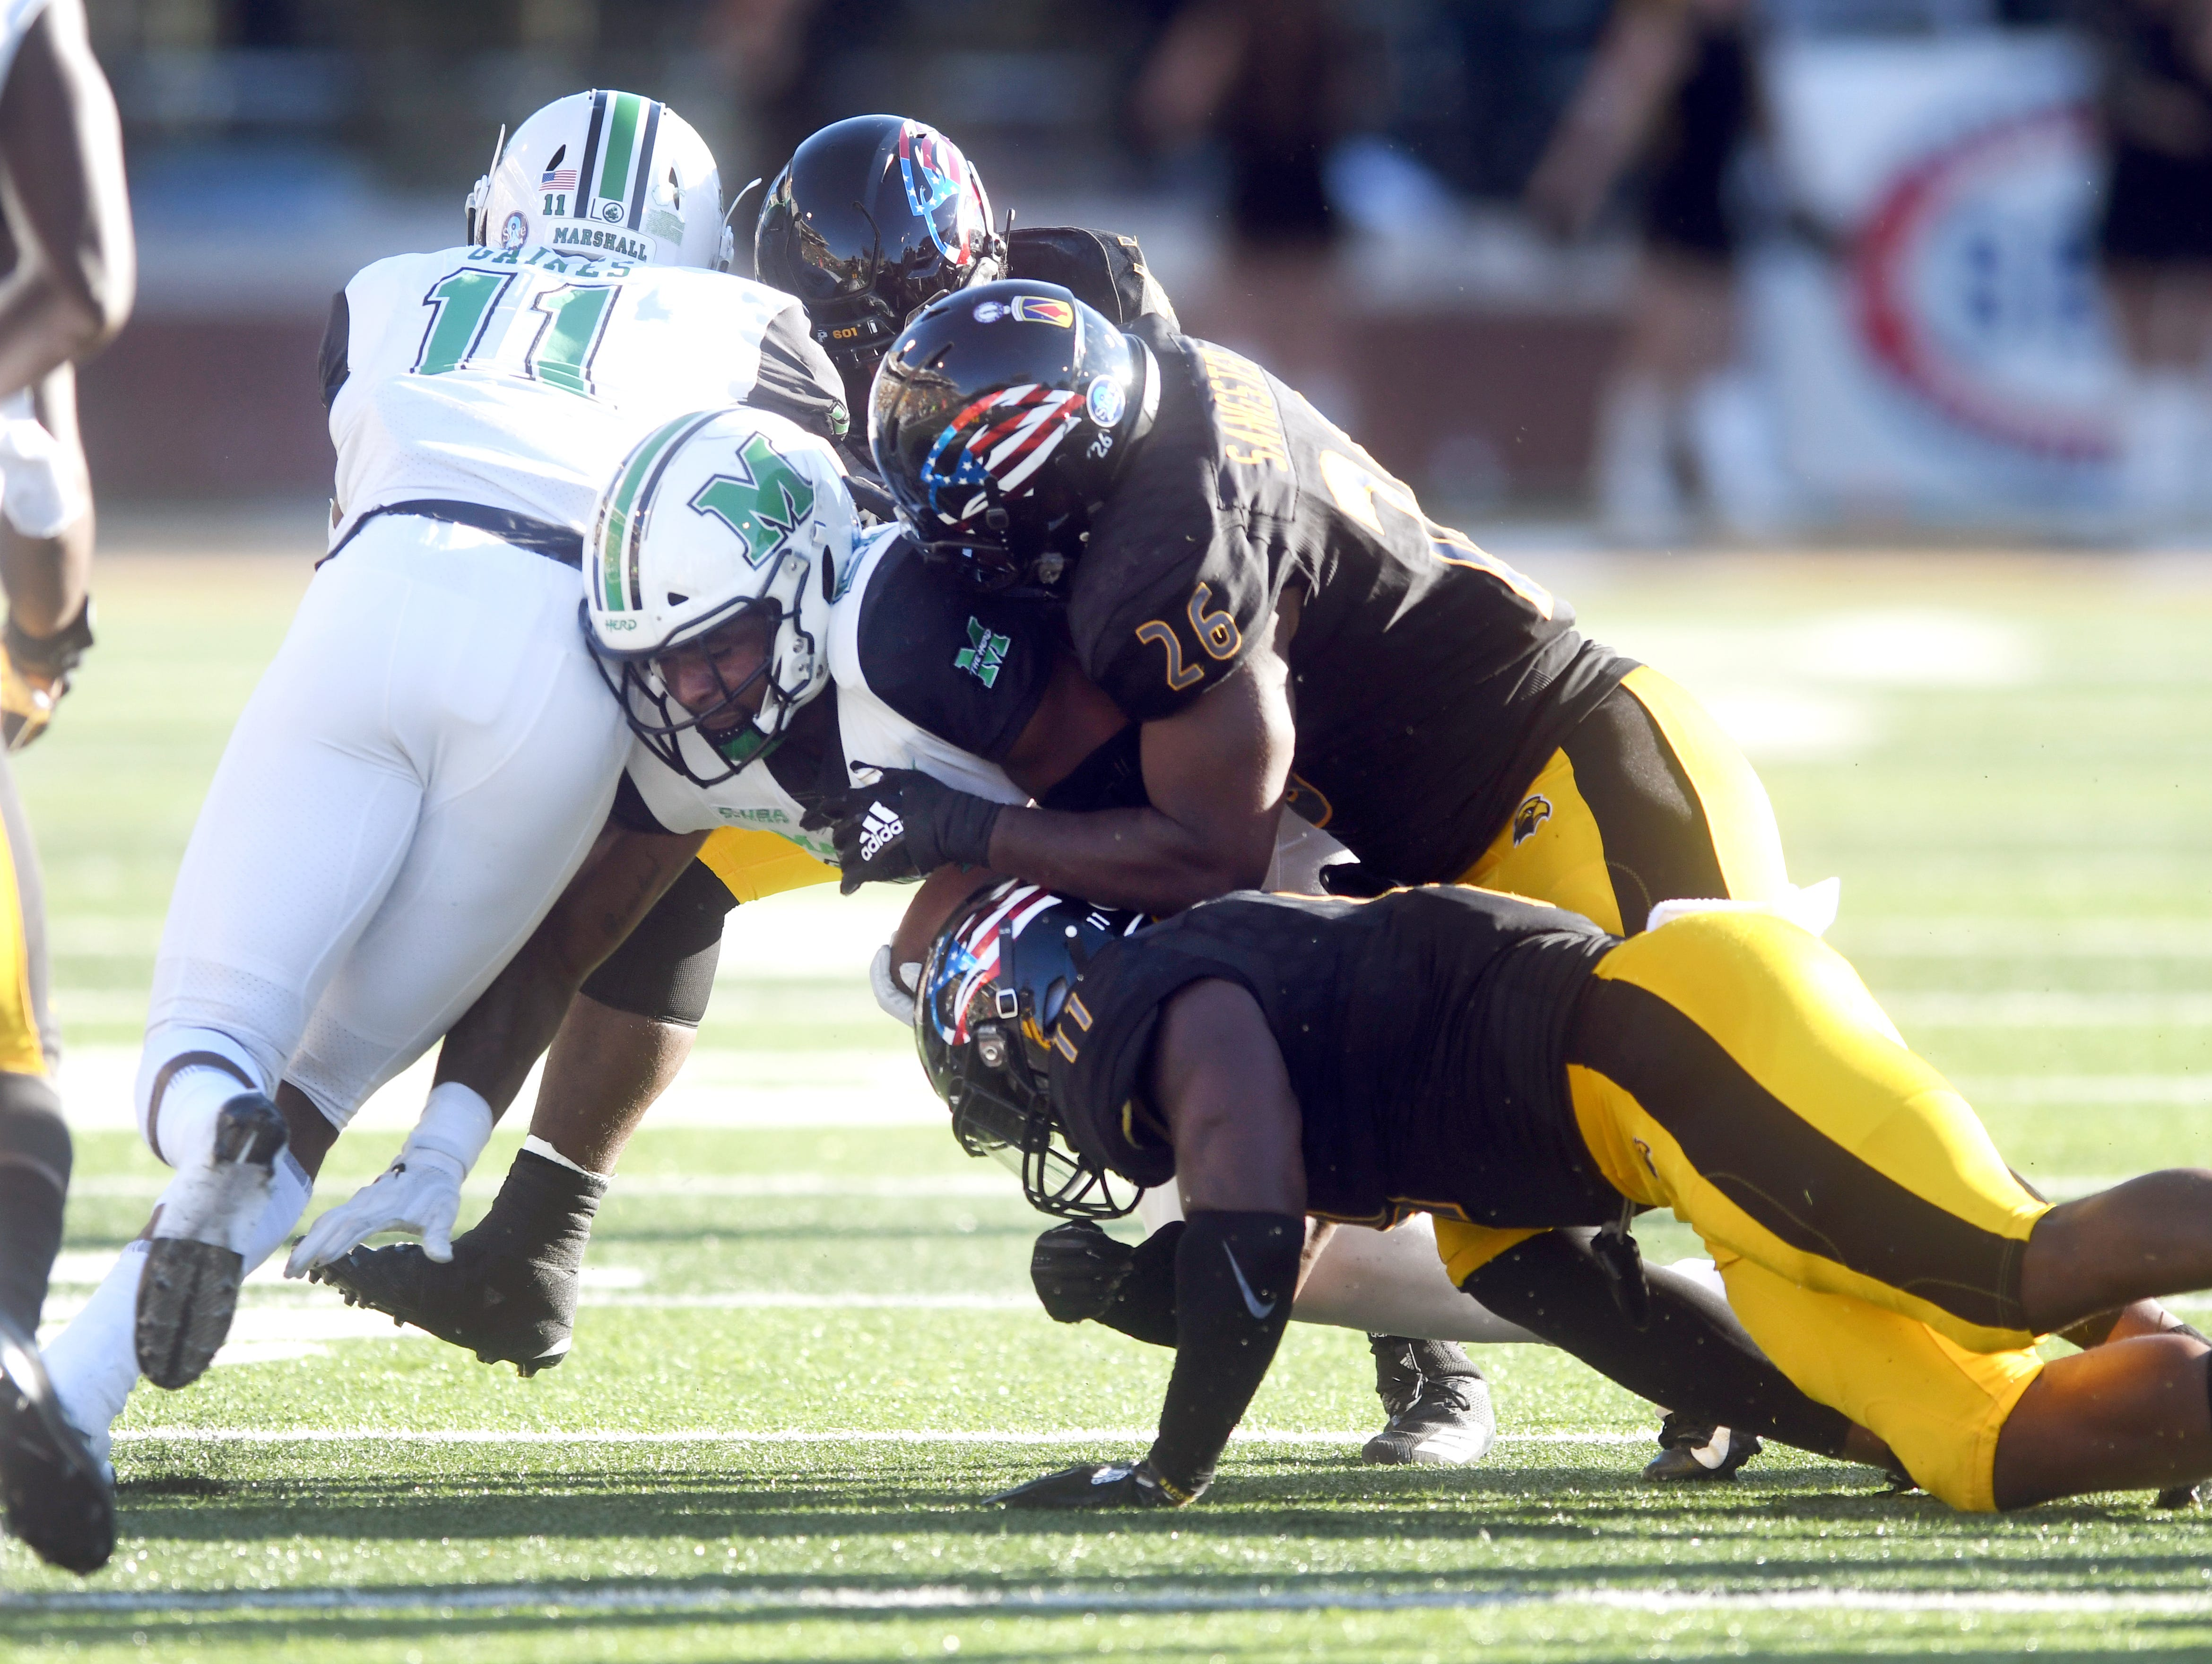 Southern Miss linebacker Jeremy Sangster makes a tackle in a game against Marshall at M.M. Roberts Stadium on Saturday, November 3, 2018.